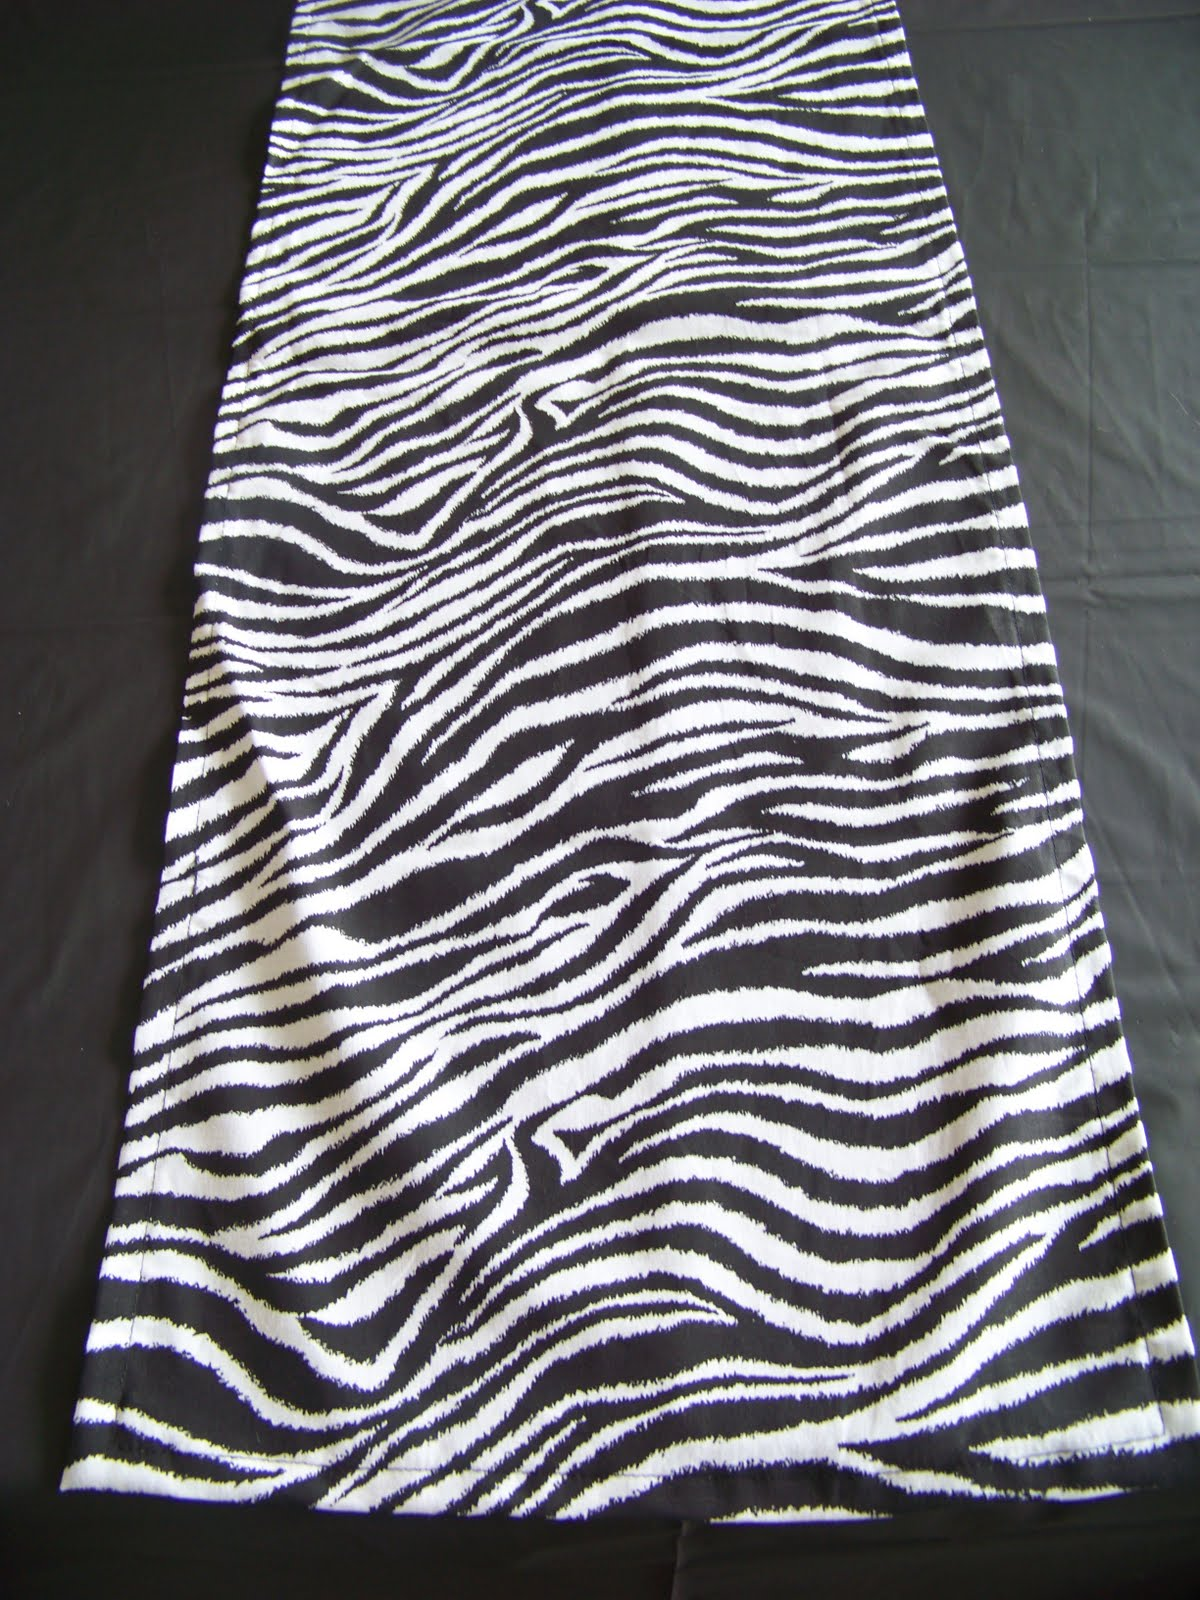 Table Runners Now Available